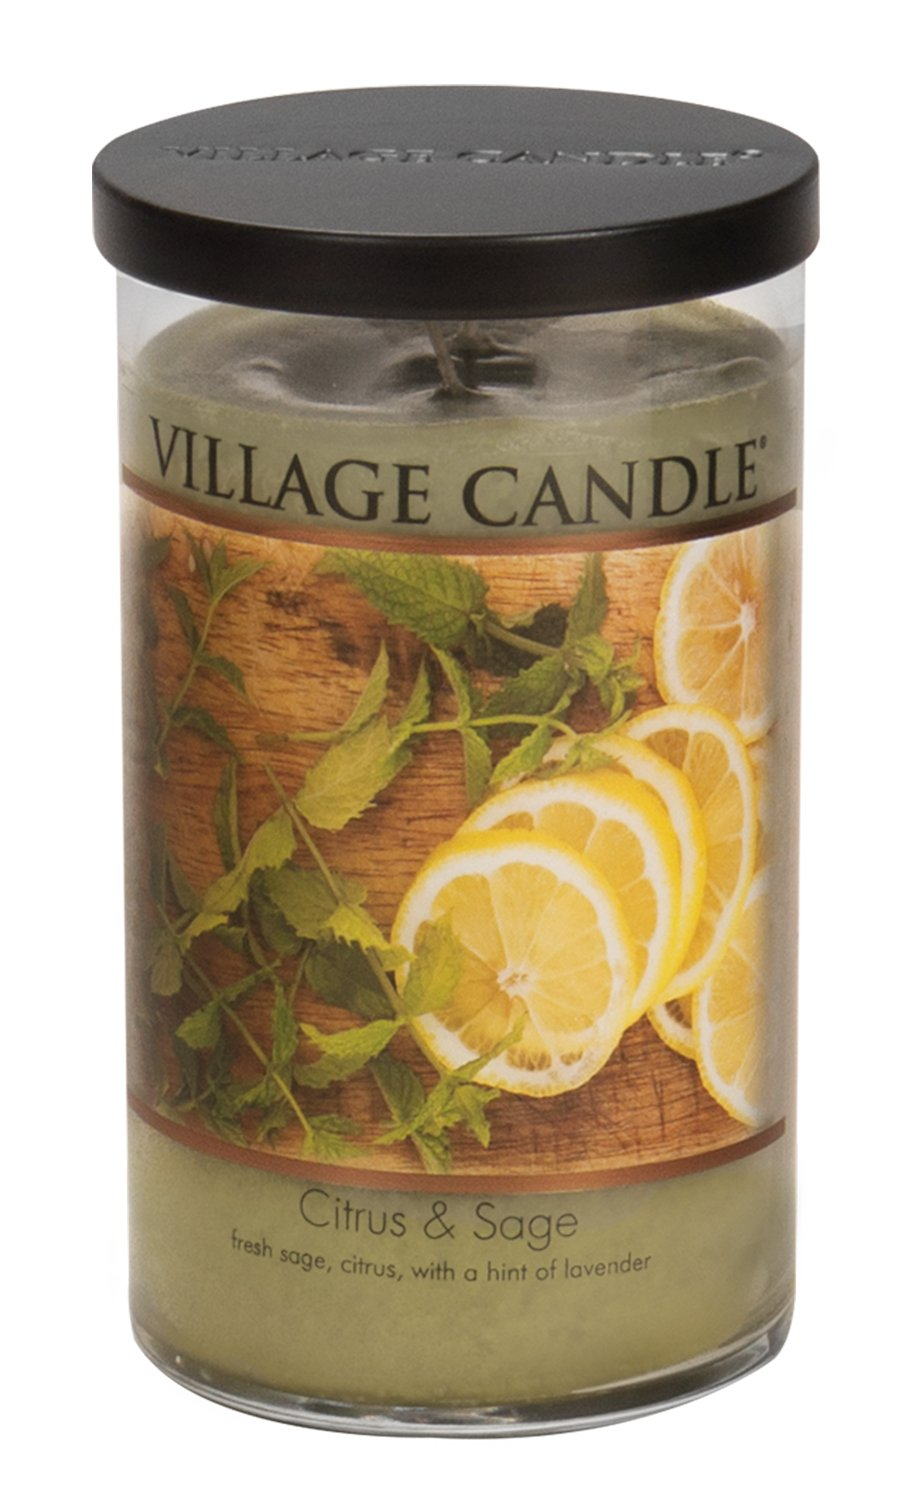 Village Candle Citrus & Sage 24 oz Glass Tumbler Scented Candle, Large by Village Candle